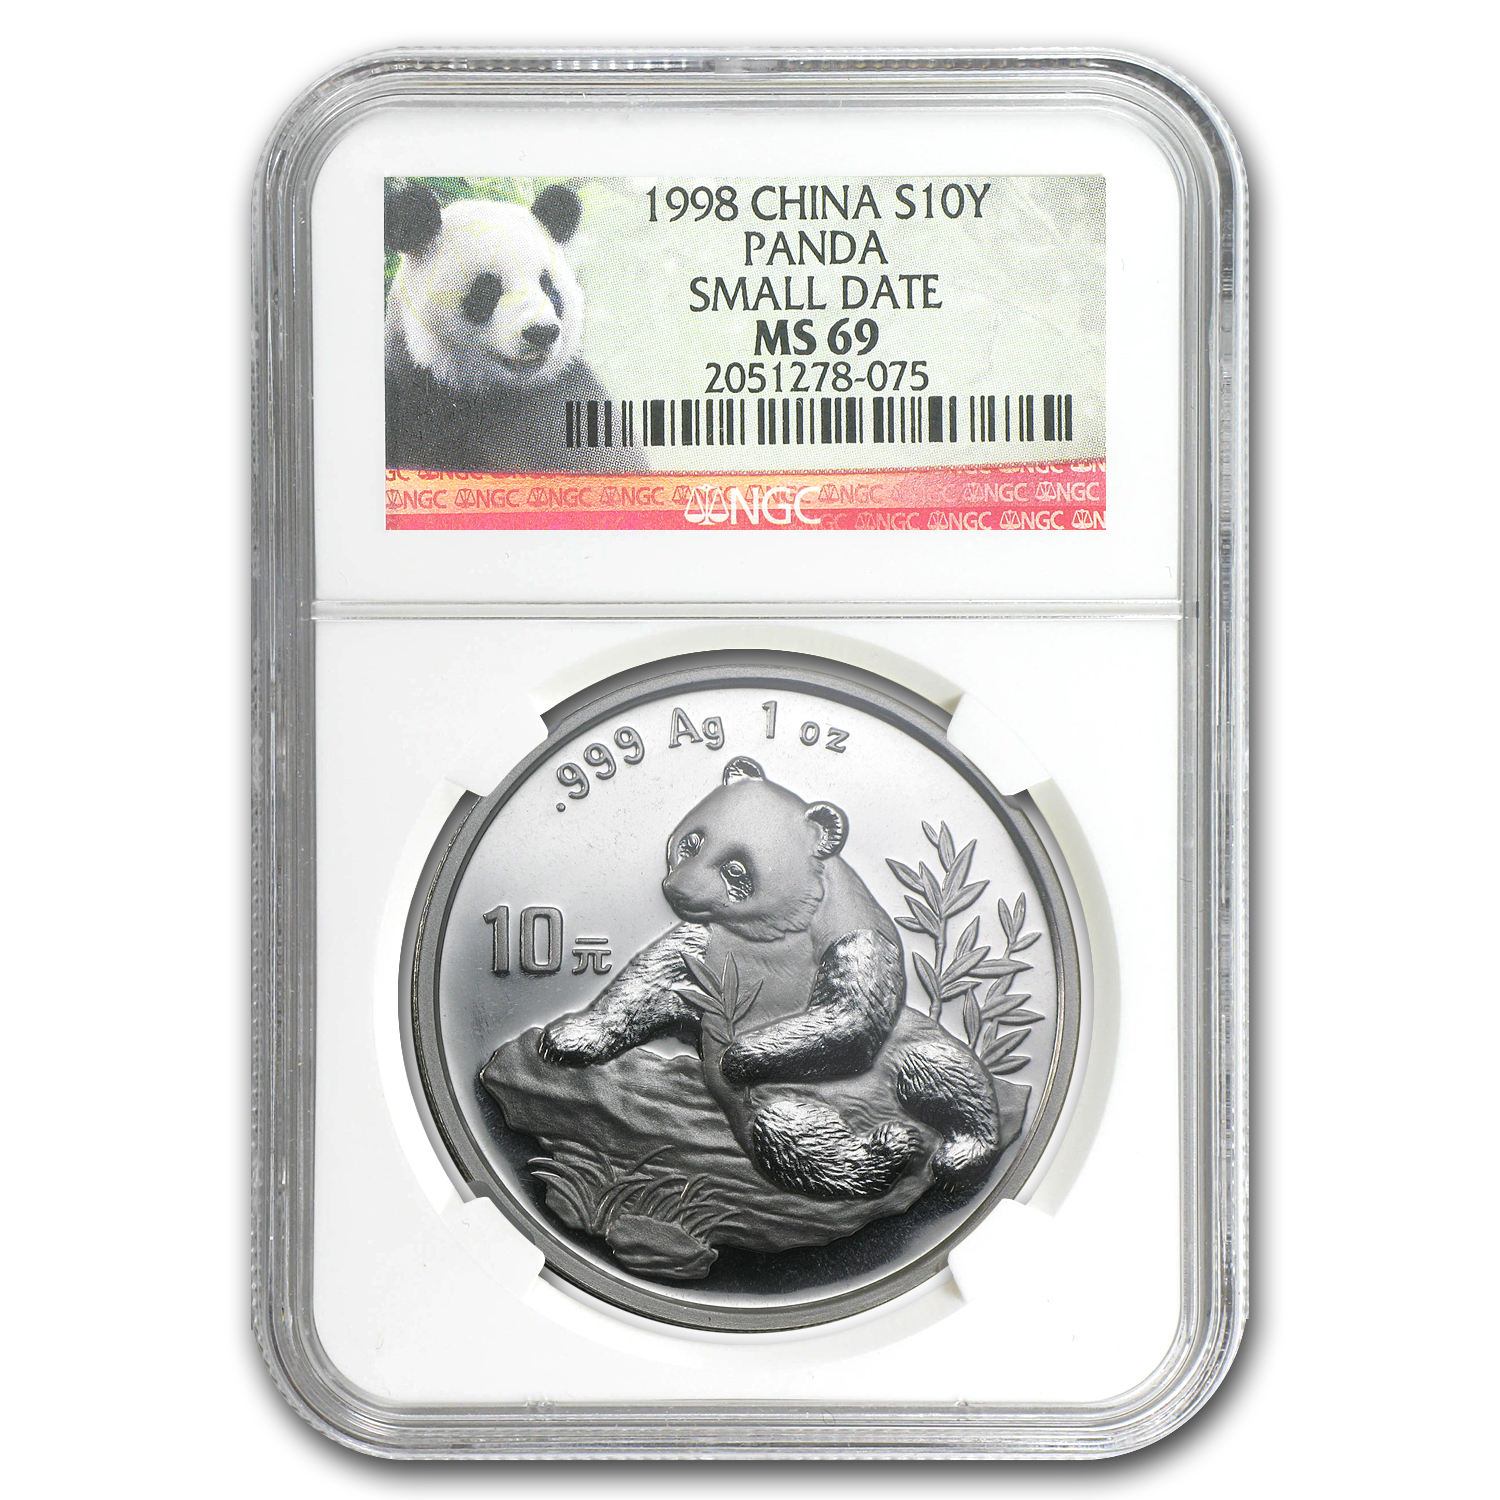 1998 China 1 oz Silver Panda MS-69 NGC (Small Date)